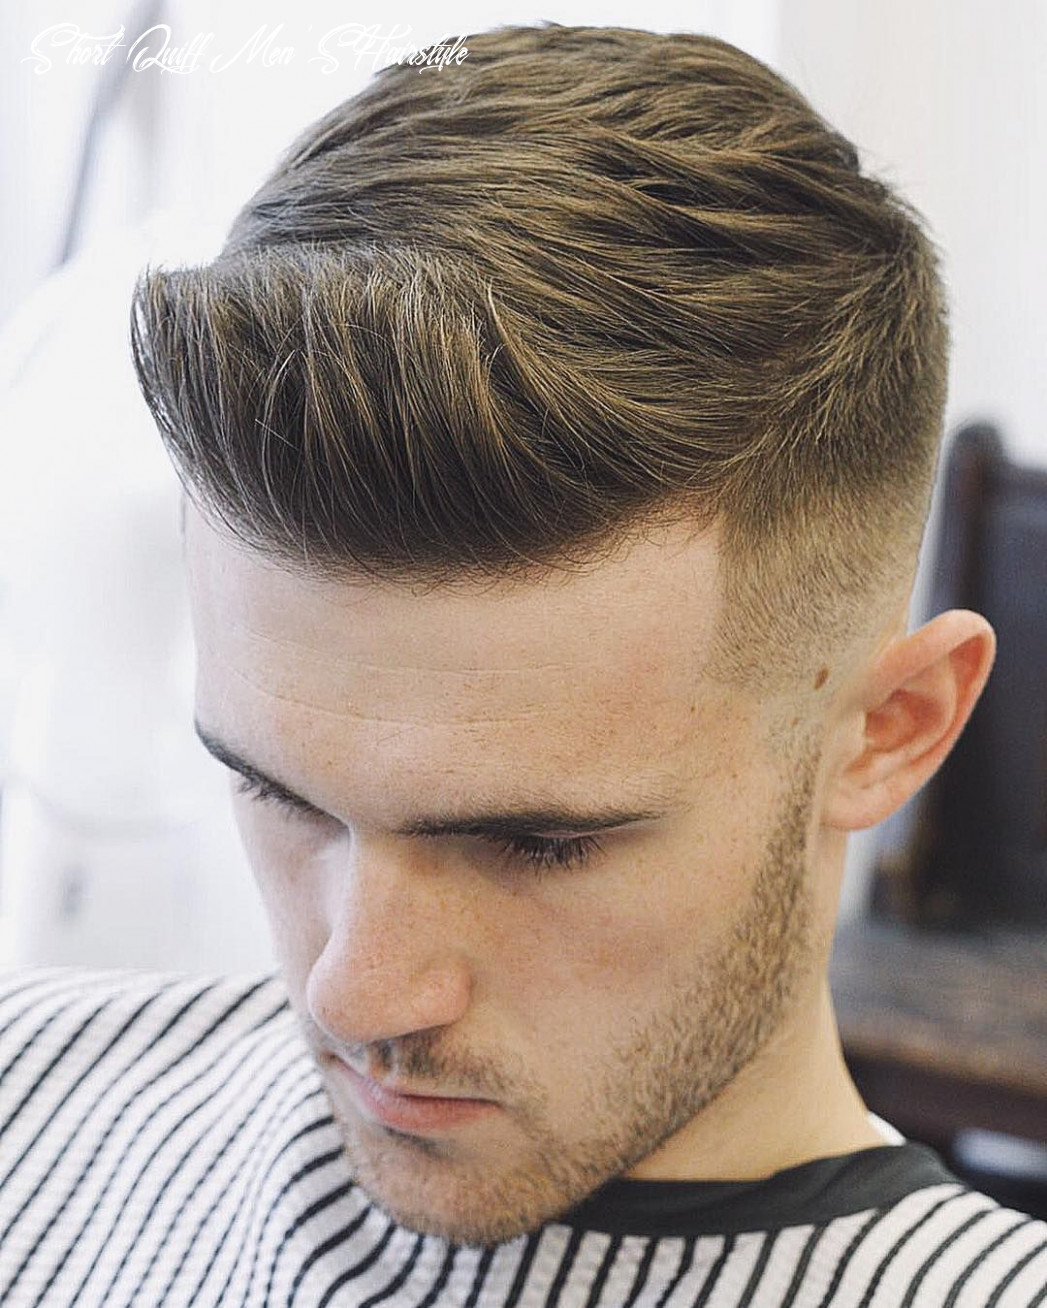 10 new hairstyles for men | mens hairstyles short, mens hairstyles